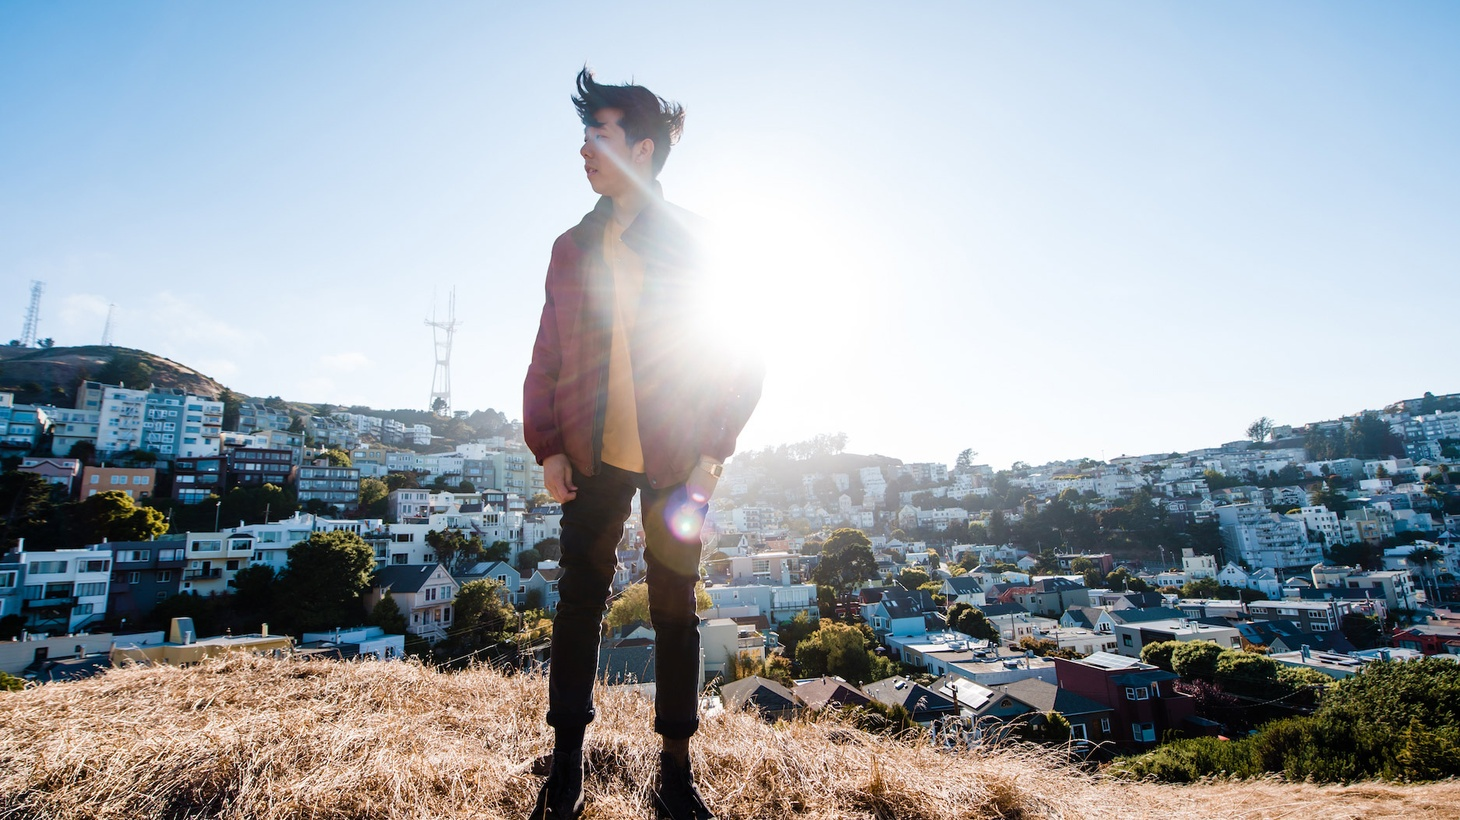 The debut album by San Francisco producer/DJ Giraffage purrs with kaleidoscopic beats and dreamy synth-pop.